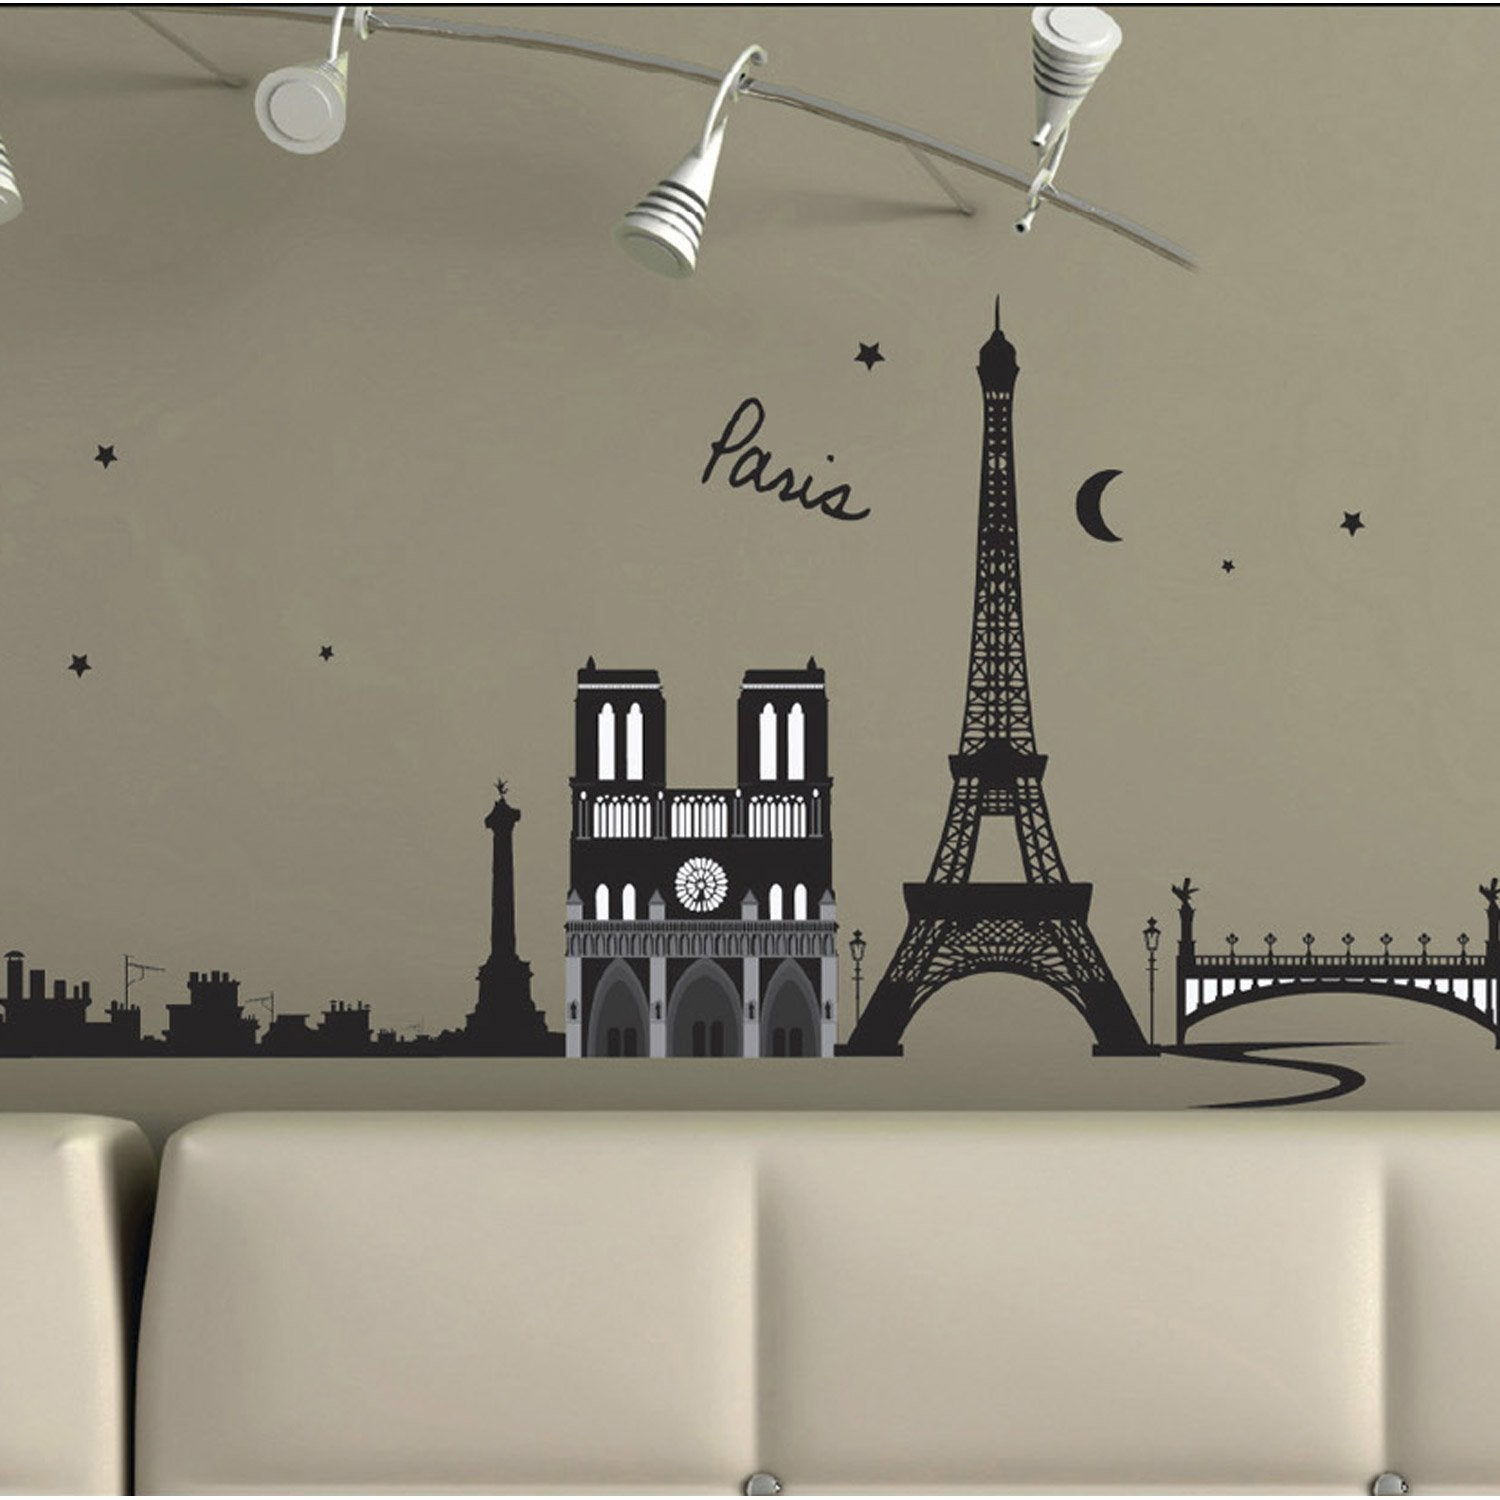 Sticker paris france 50 cm x 70 cm leroy merlin for Stickers carrelage cuisine leroy merlin